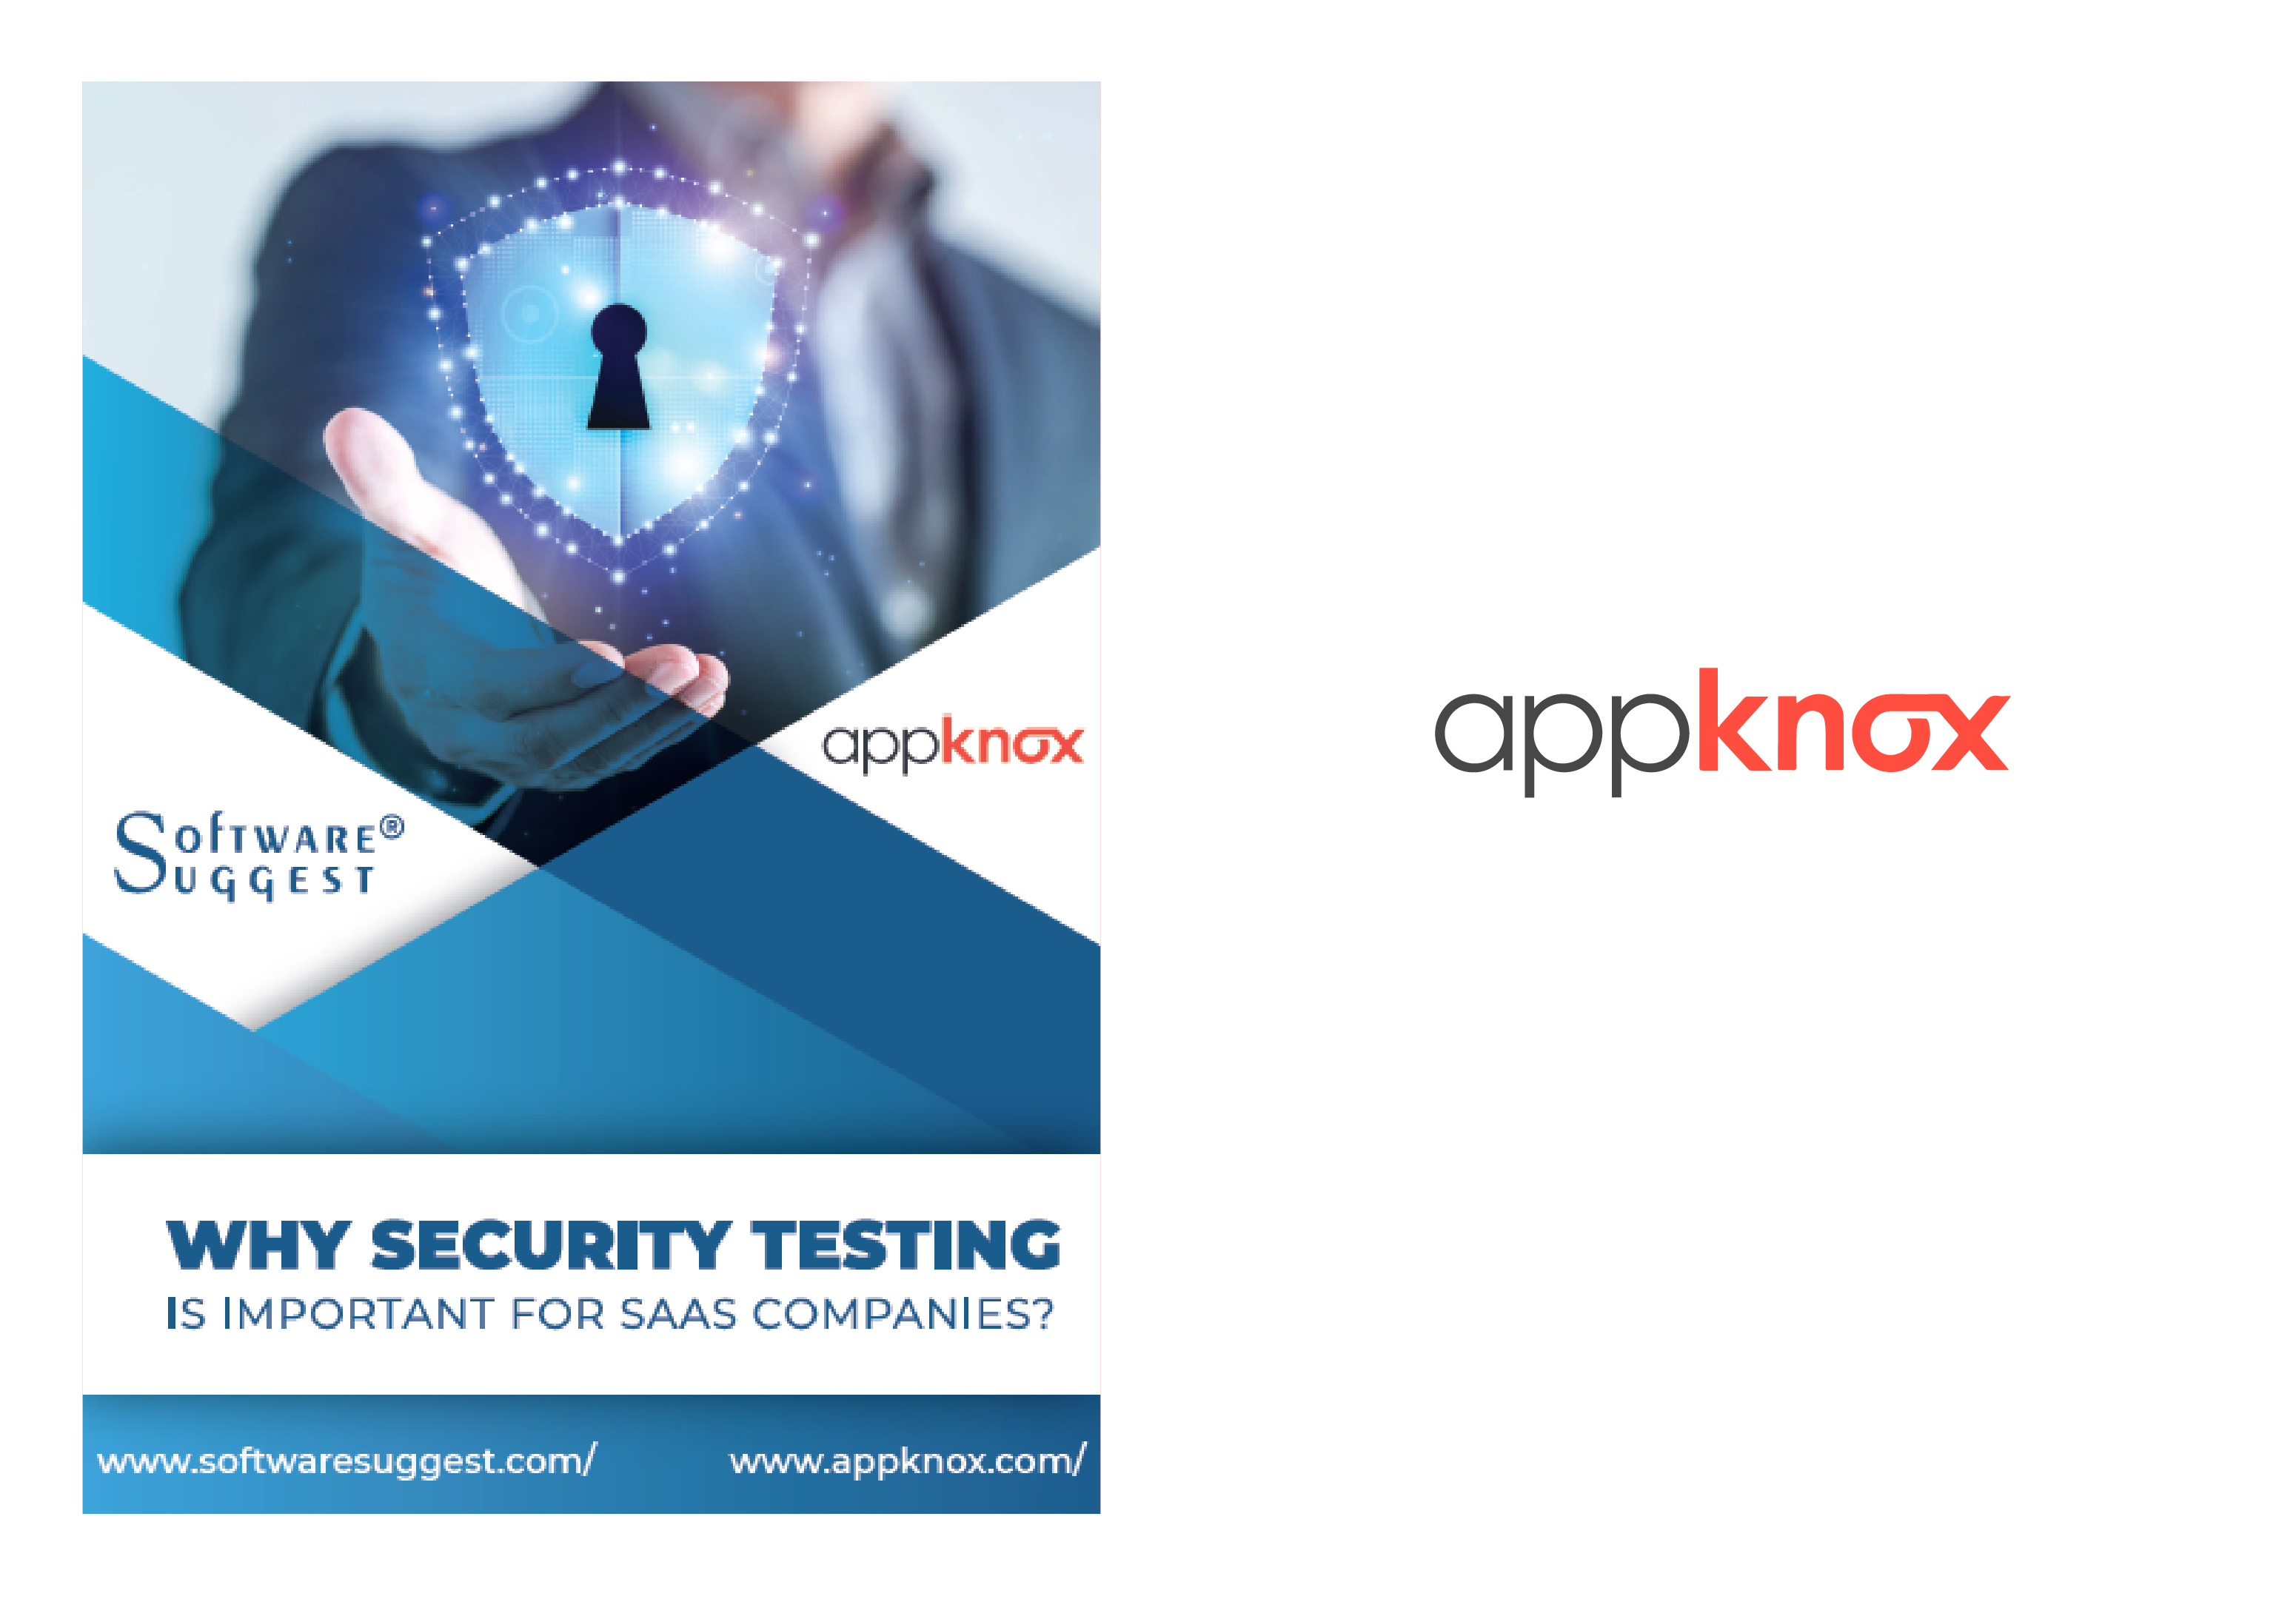 WHITE PAPER - Software Suggest - Appknox Saas Security handbook-01